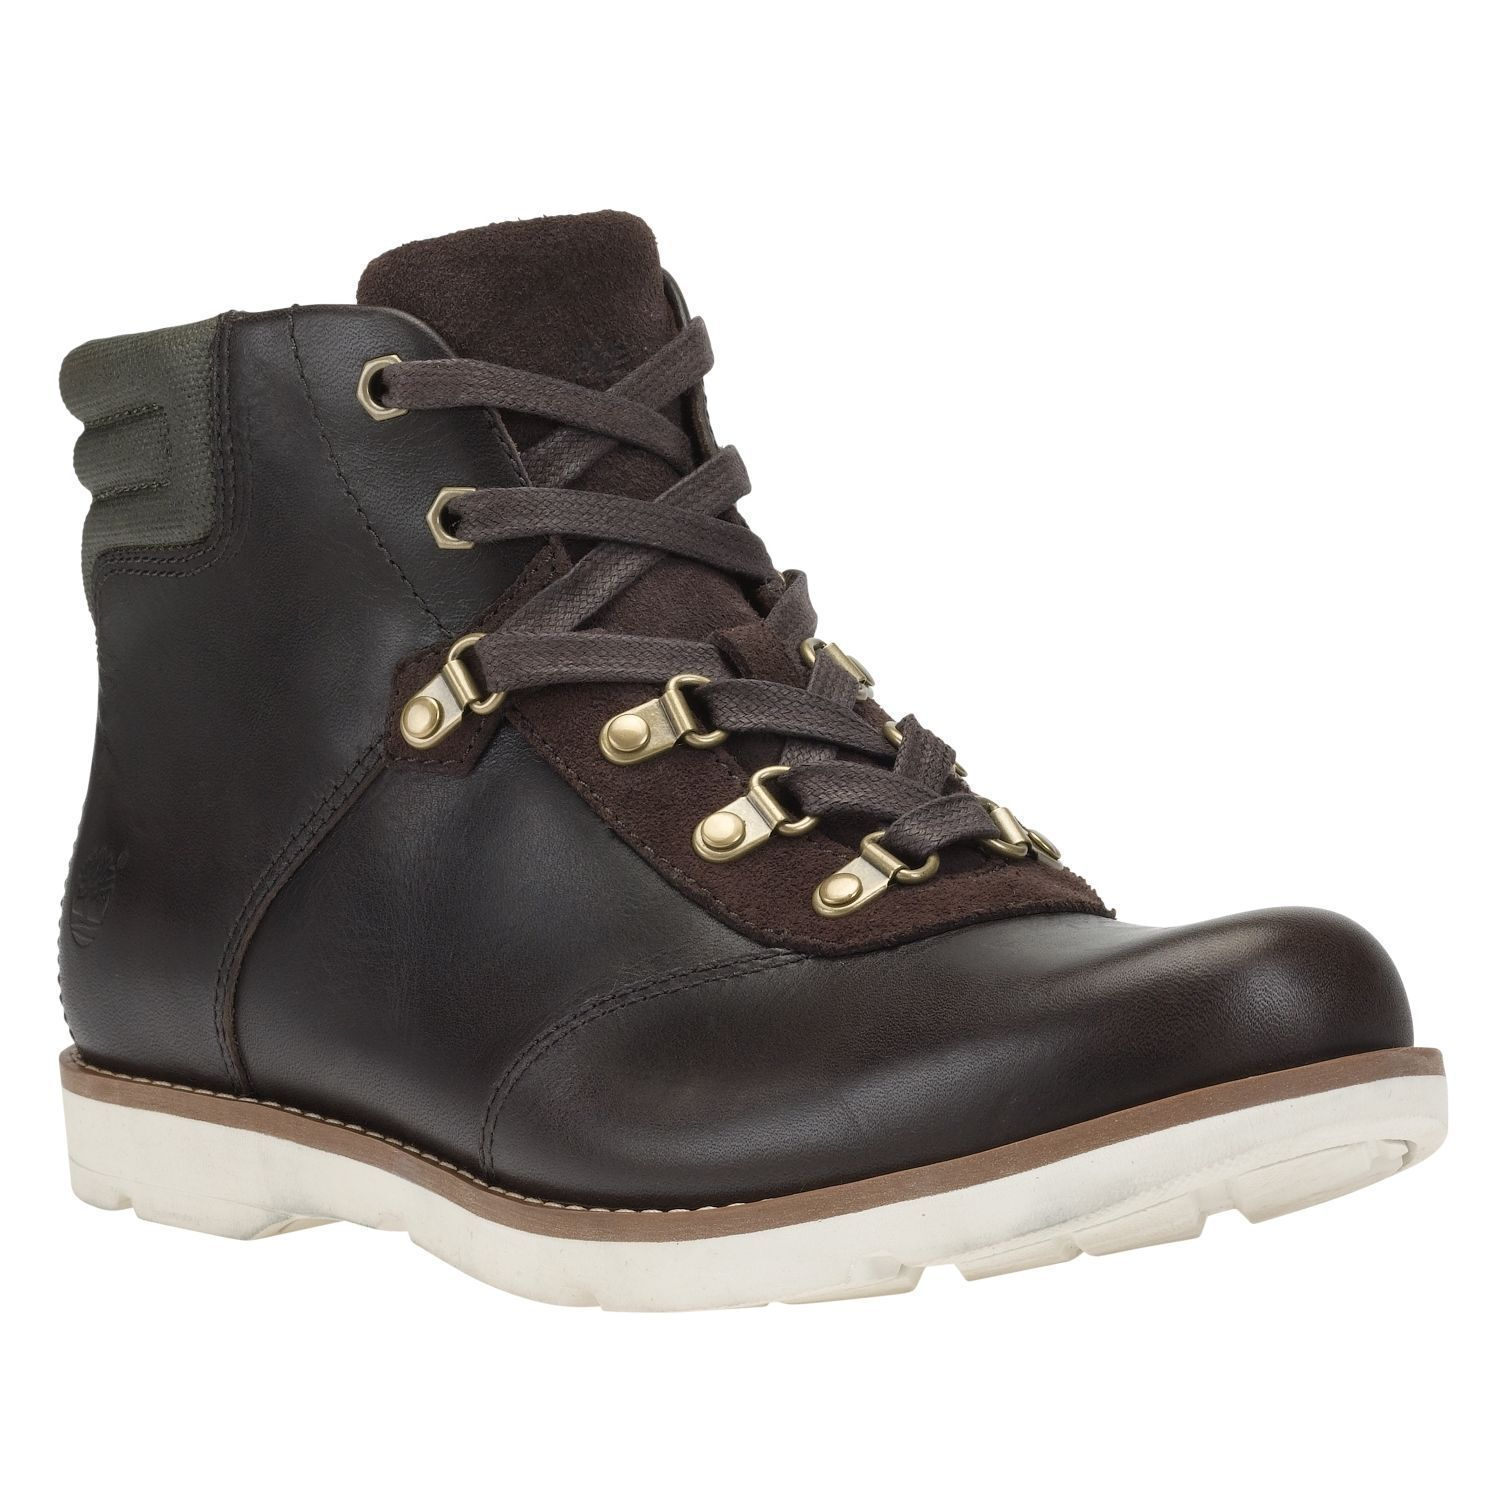 Timberland Women's Earthkeepers Mosley Brown Ankle Boots Style #8512A +FREE GIFT